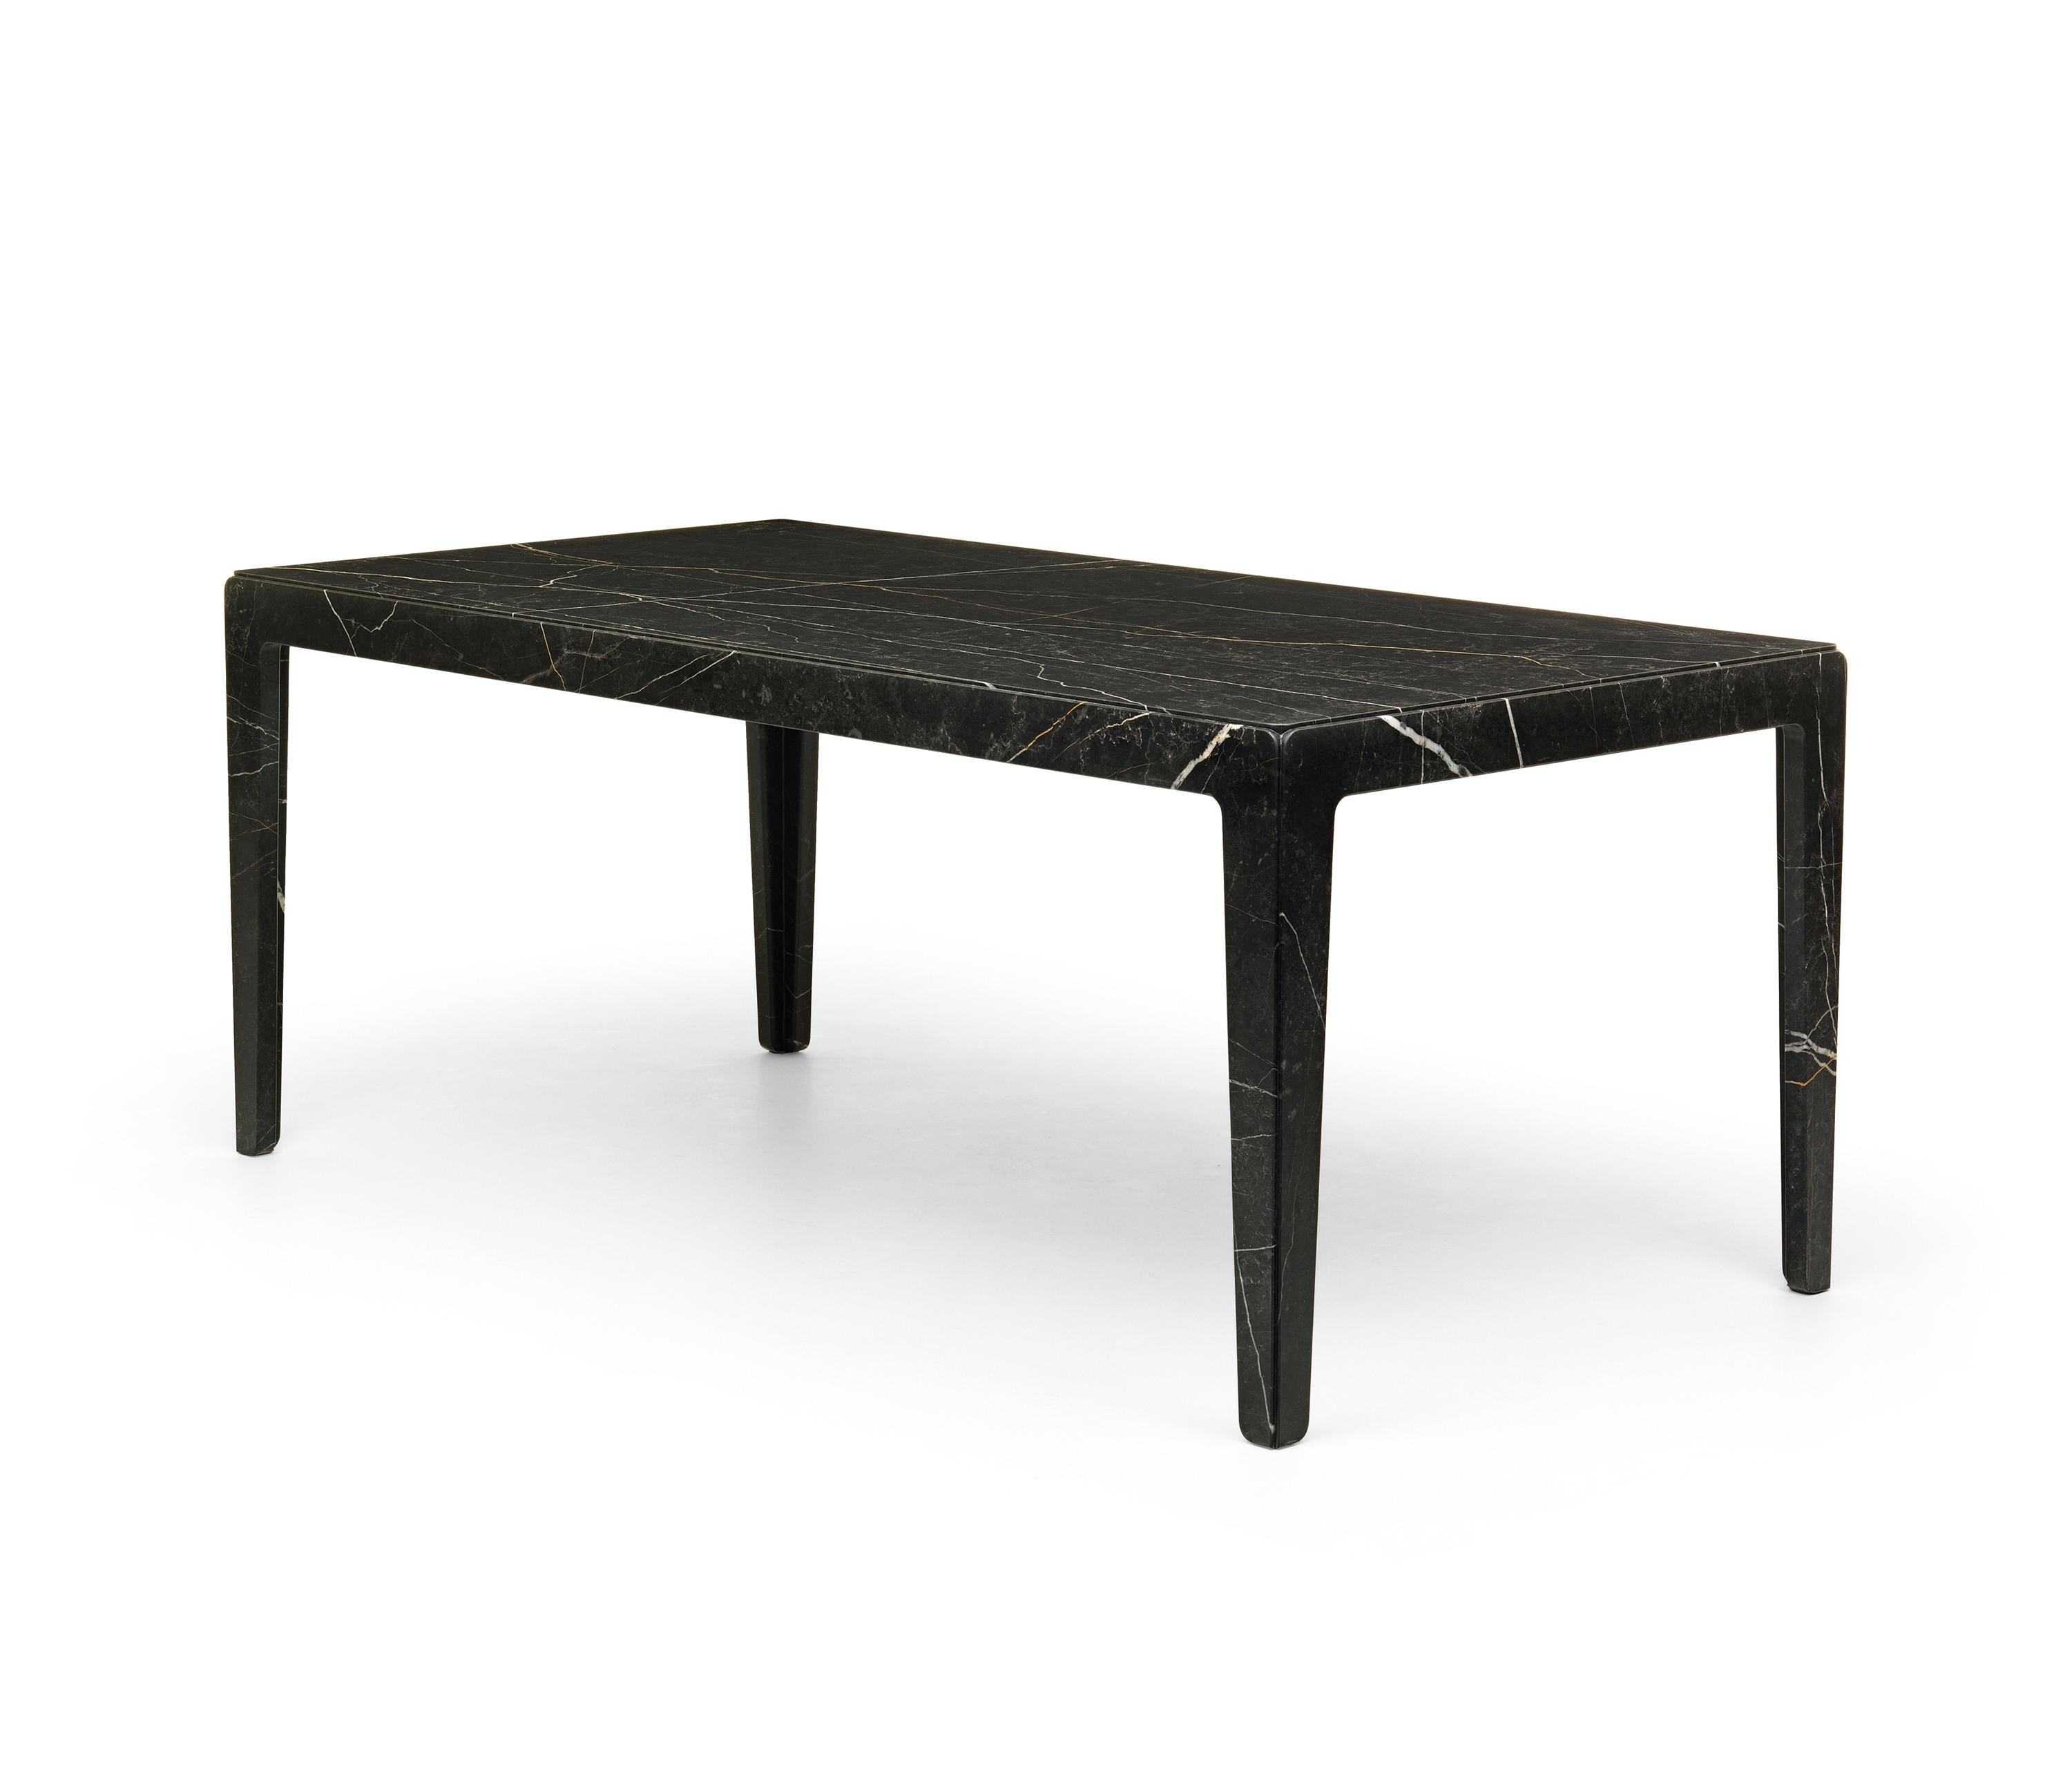 Rock Table – Dining Tables From Eponimo | Architonic Throughout Most Popular Laurent Rectangle Dining Tables (View 3 of 20)